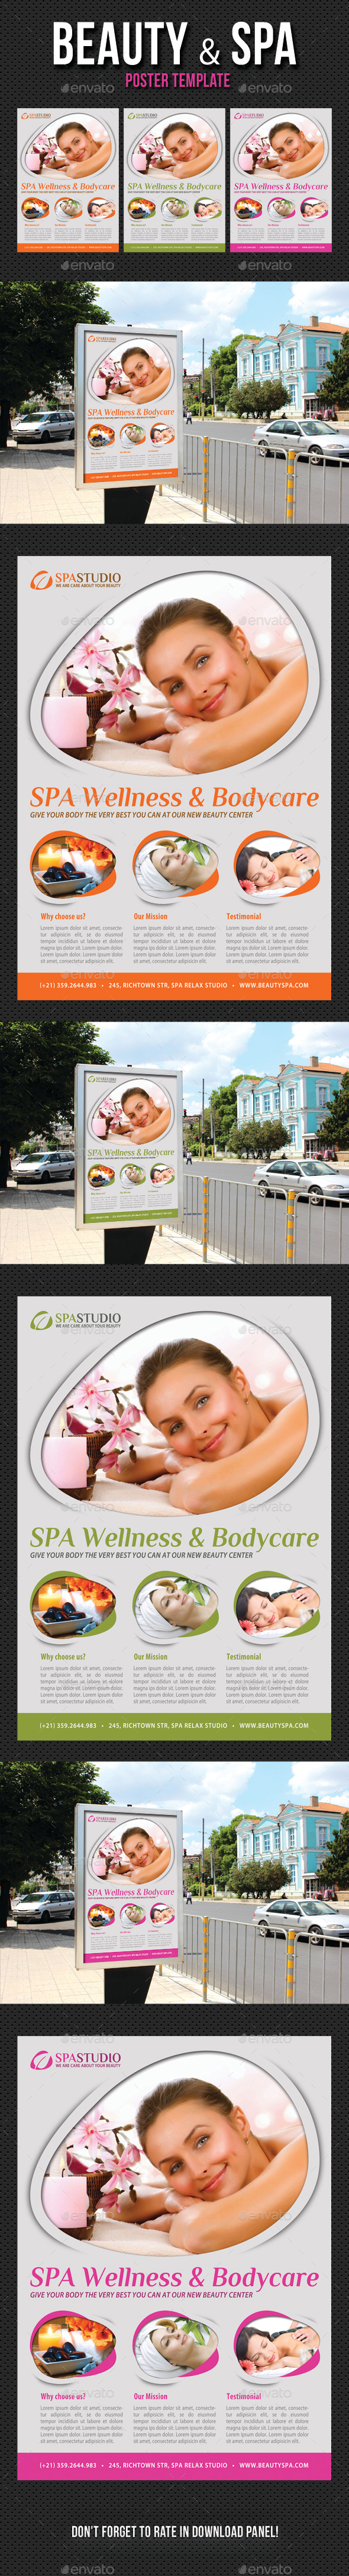 Beauty and Spa Poster Template V08 - Signage Print Templates